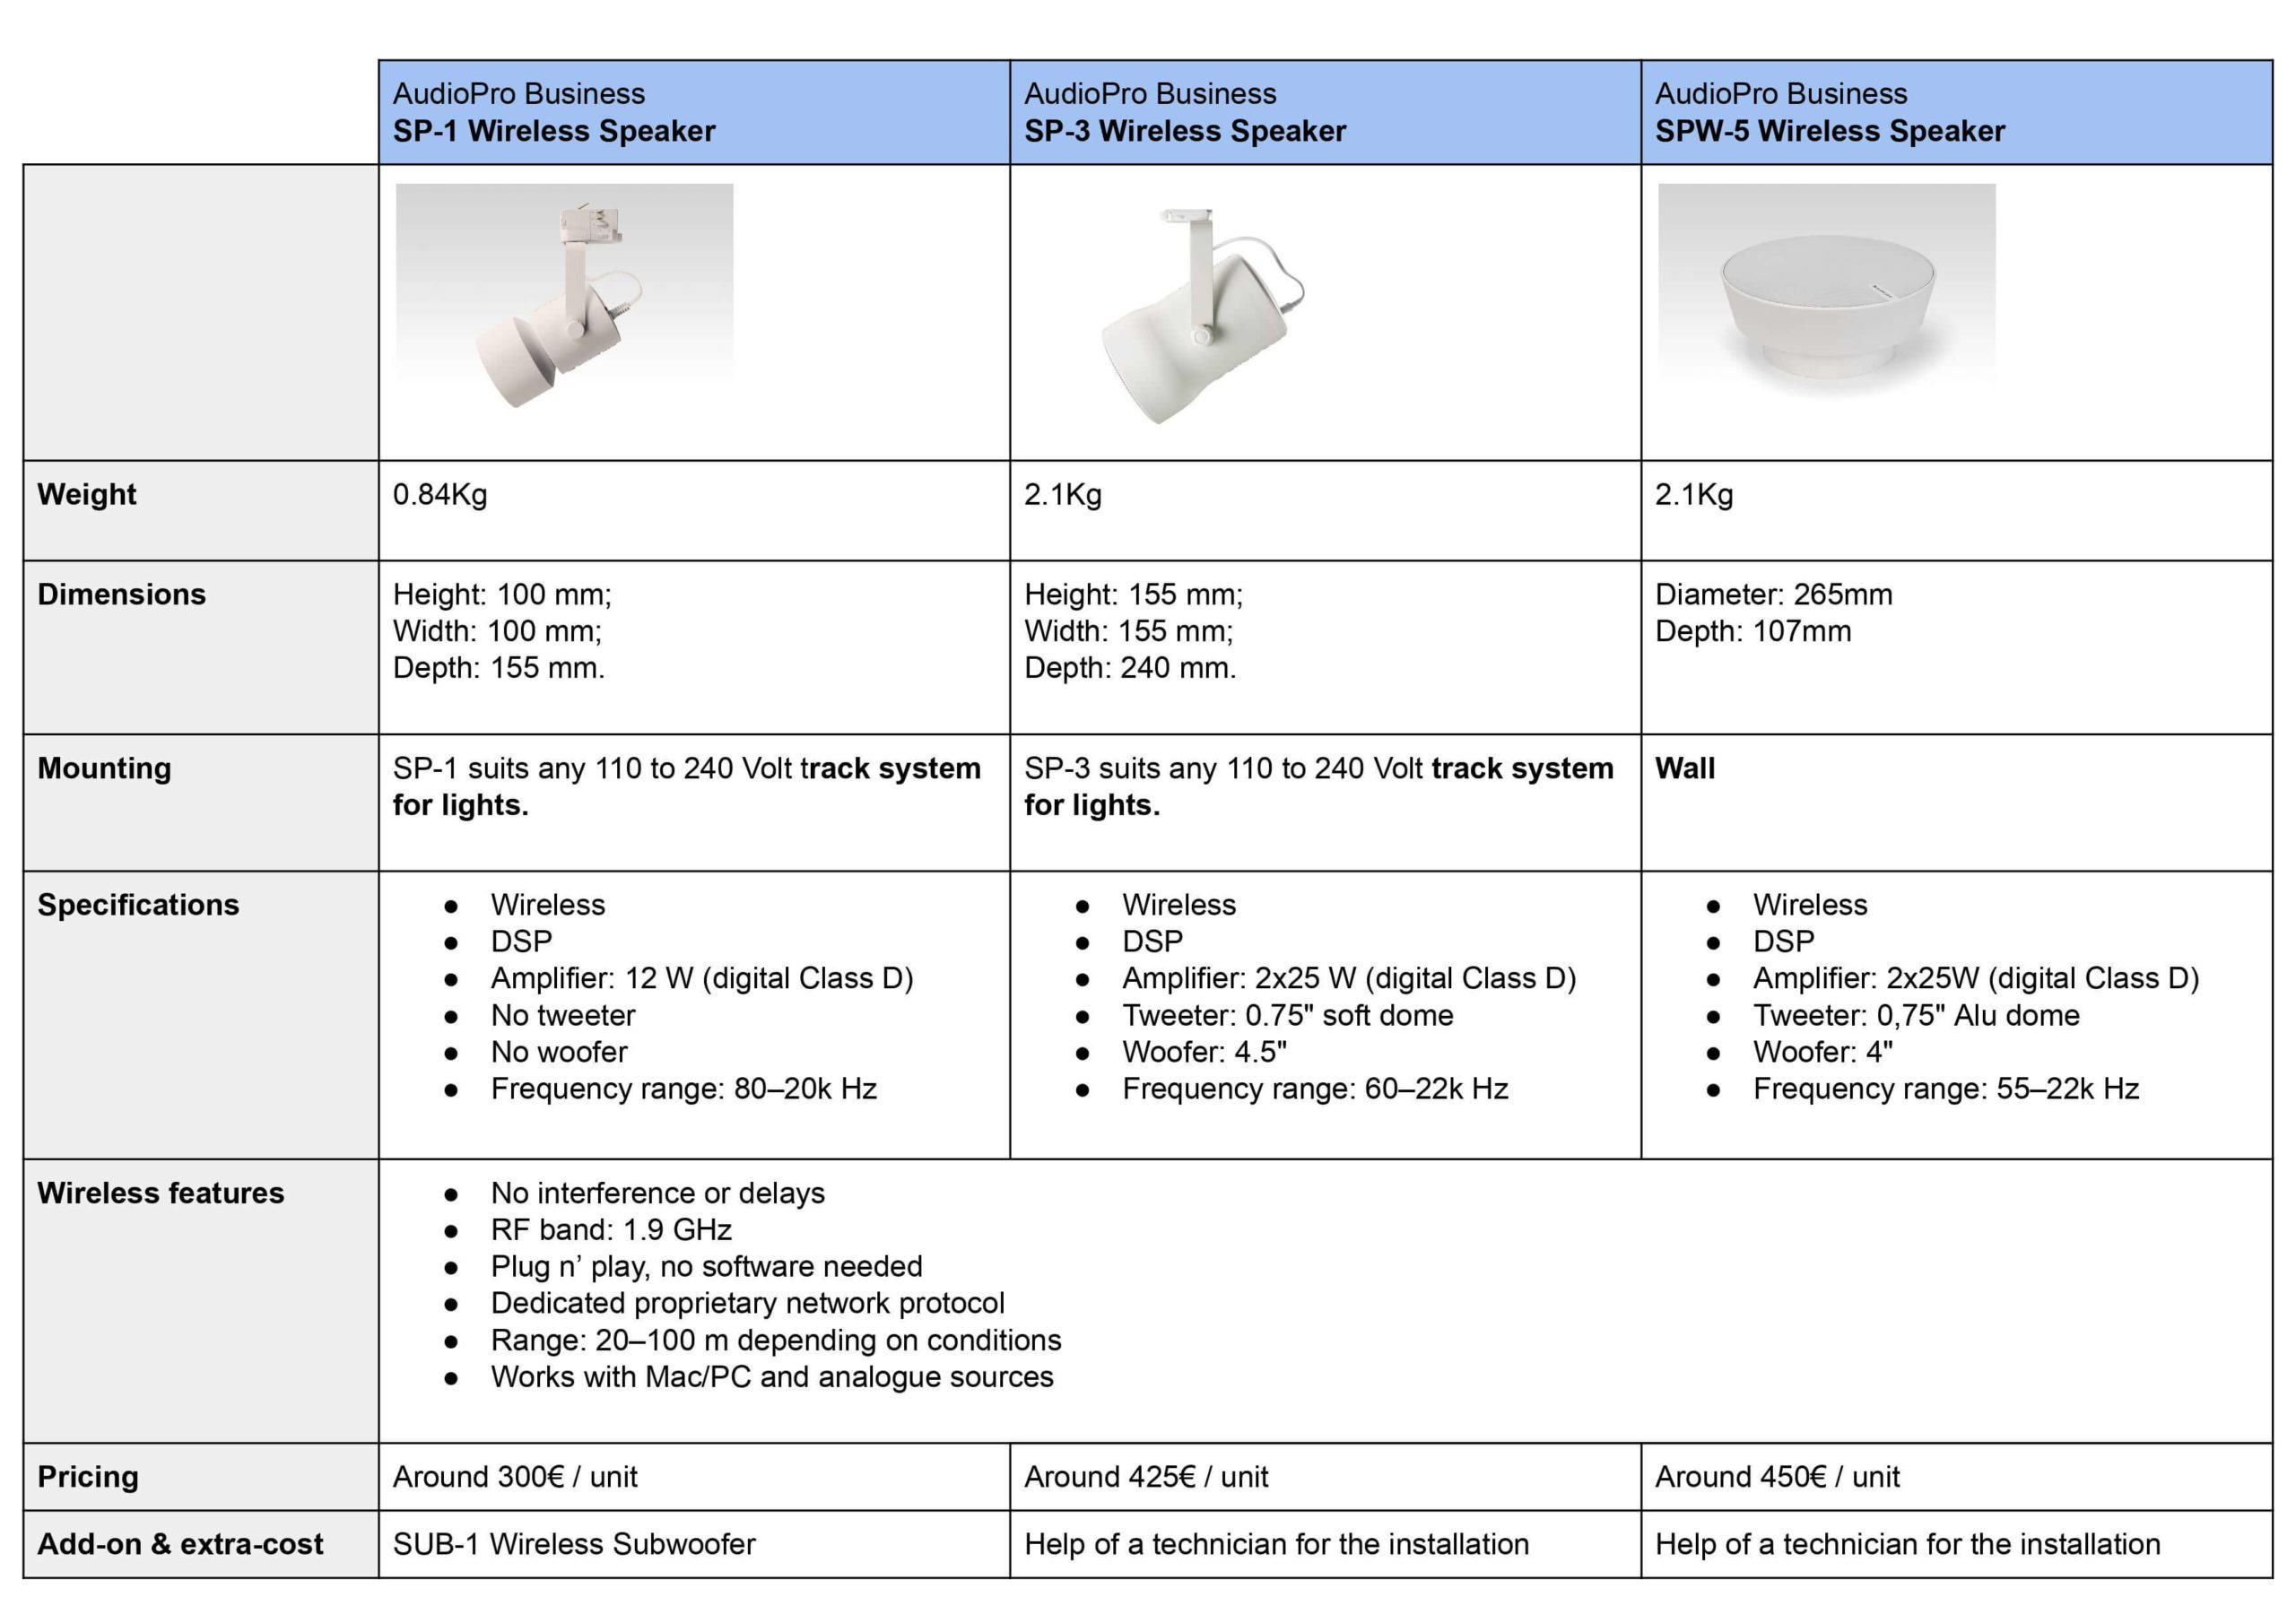 AudioPro-Business Product-comparison-table 2020.09